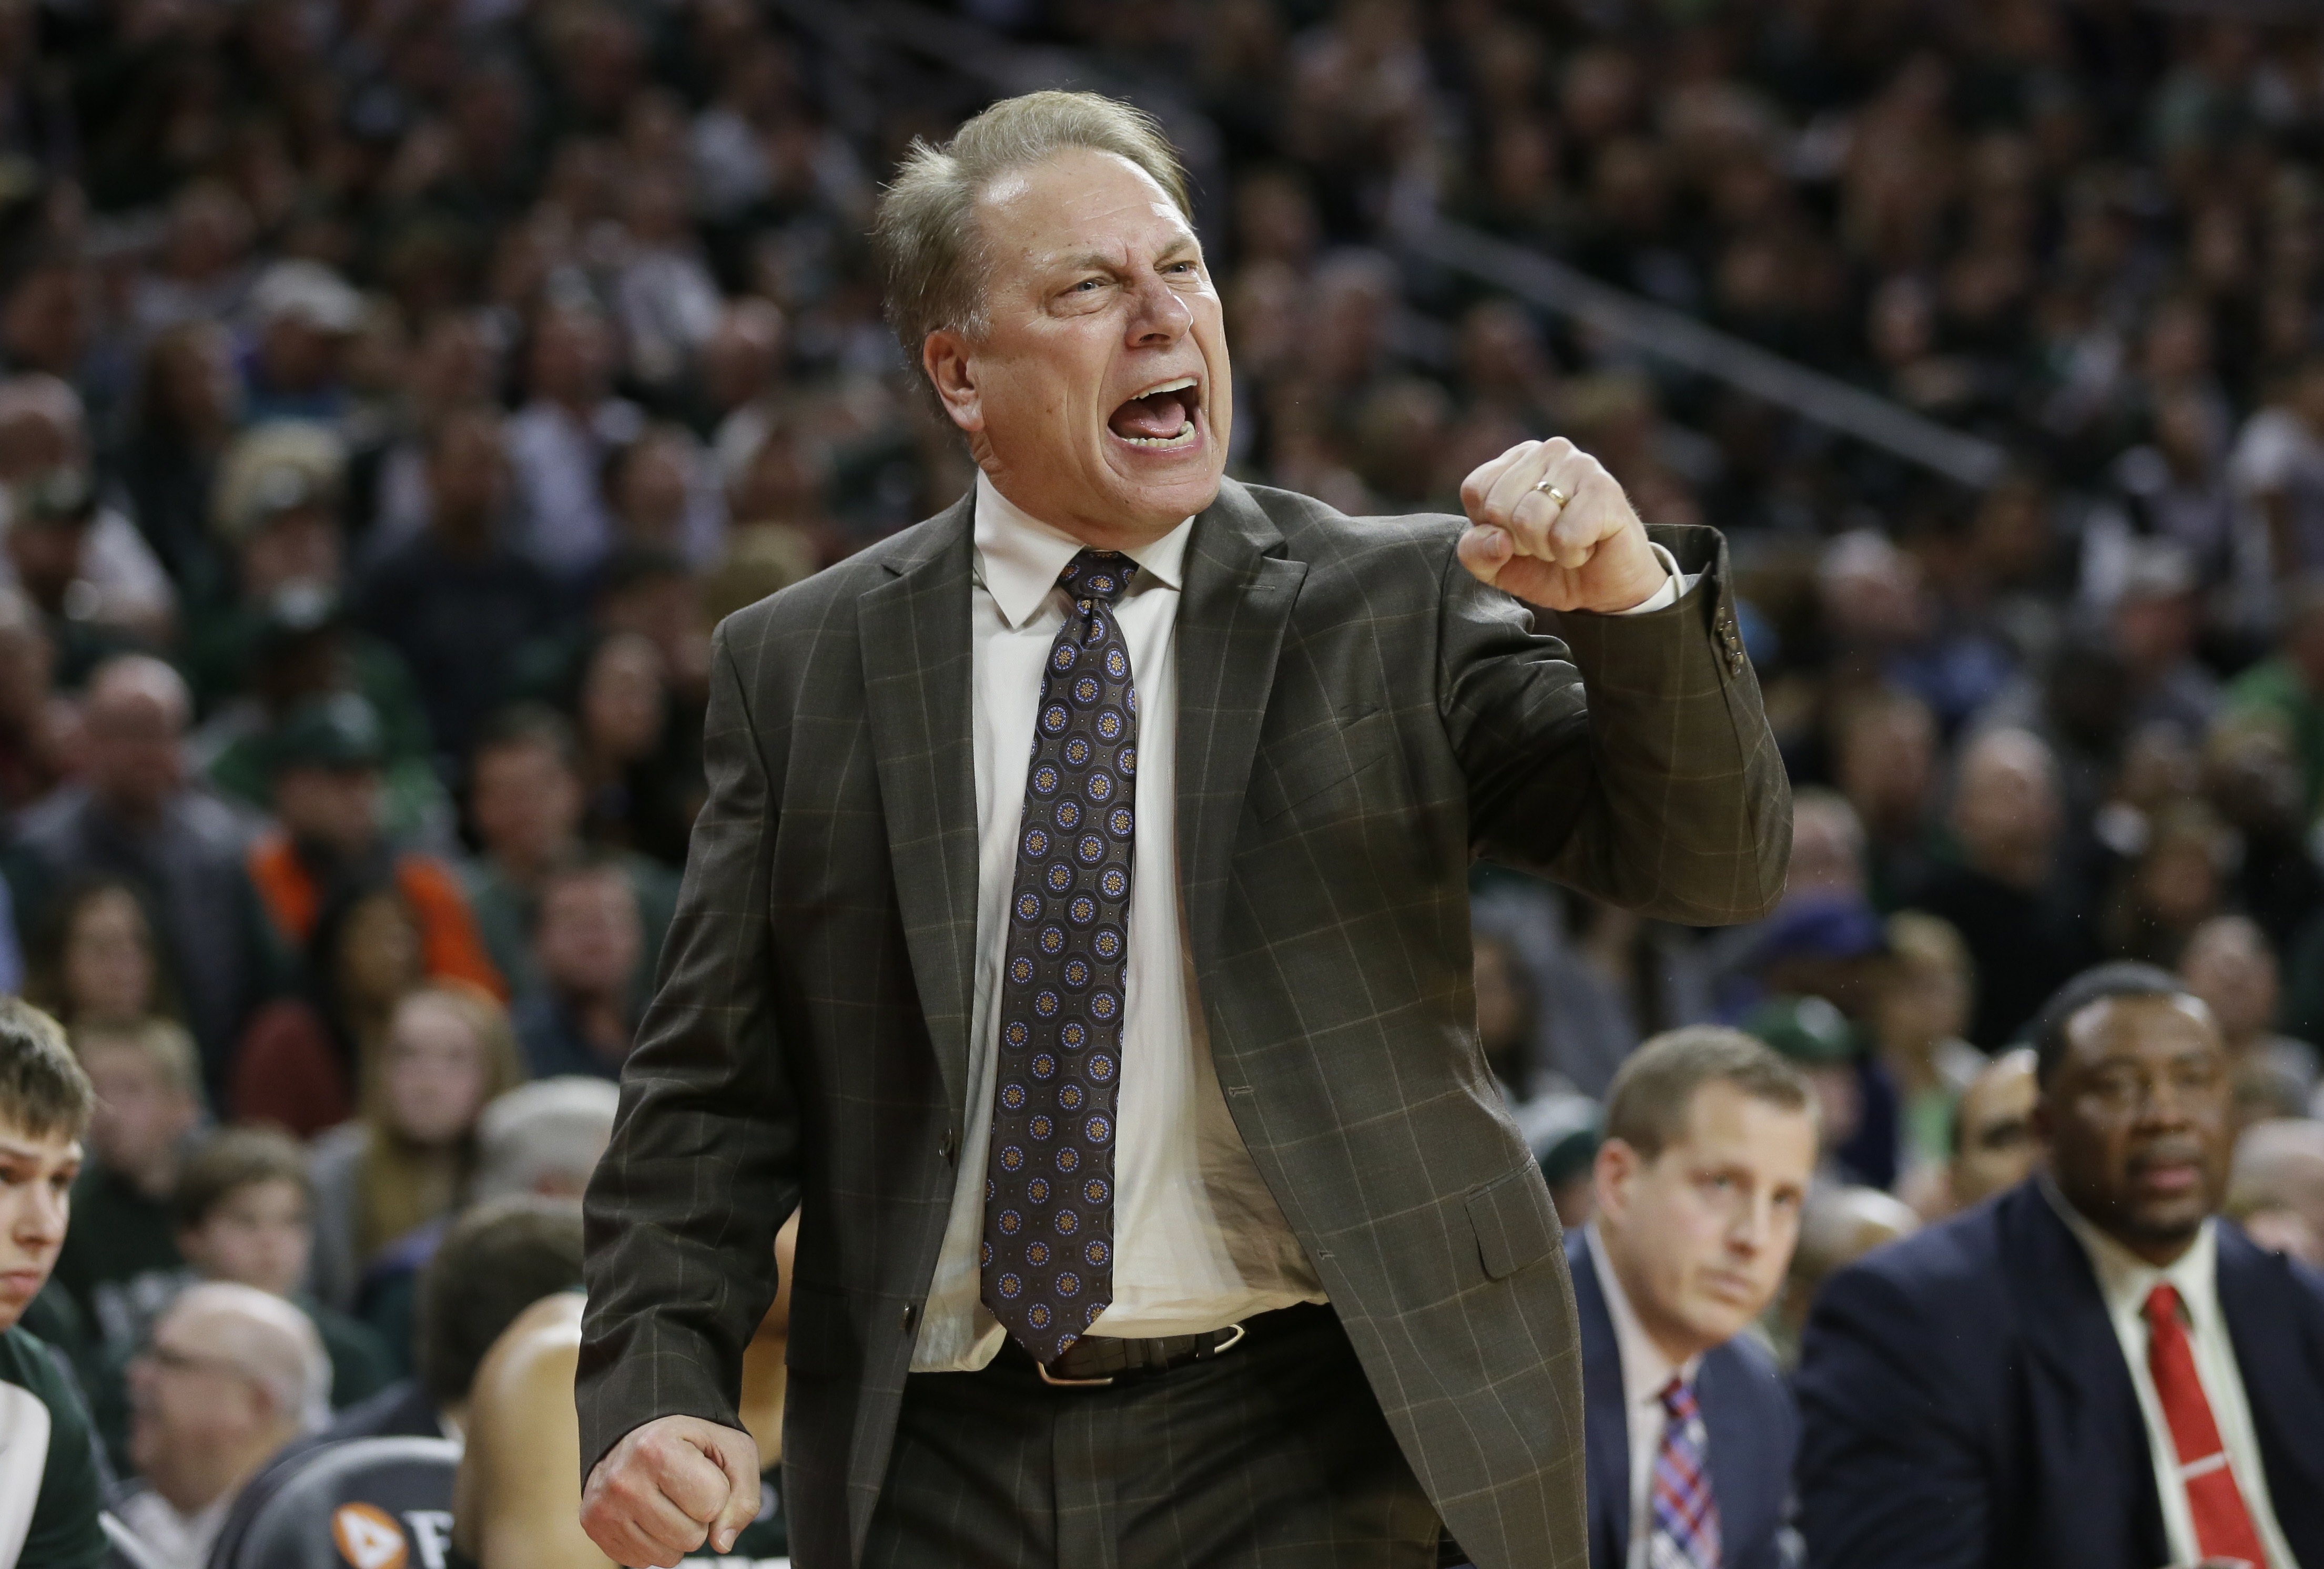 Michigan State coach Tom Izzo pumps his fist during the second half of his team's NCAA college basketball game against Oakland, Tuesday, Dec. 22, 2015, in Auburn Hills, Mich. (AP Photo/Carlos Osorio)